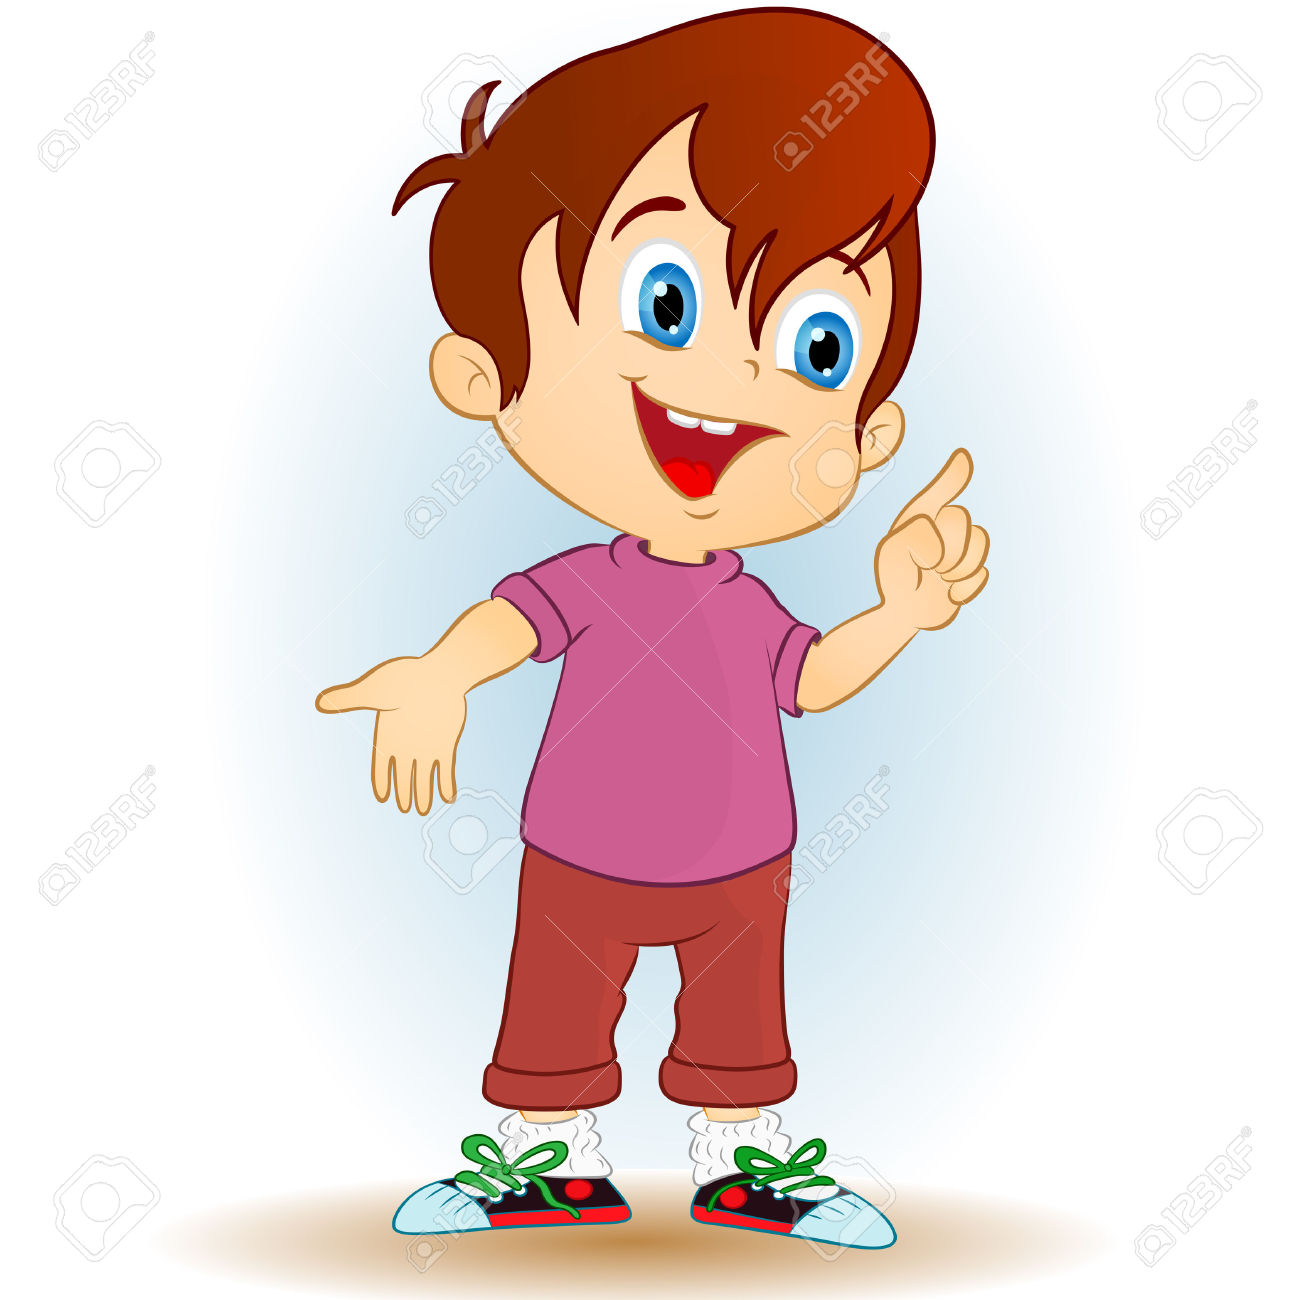 a young boy clipart